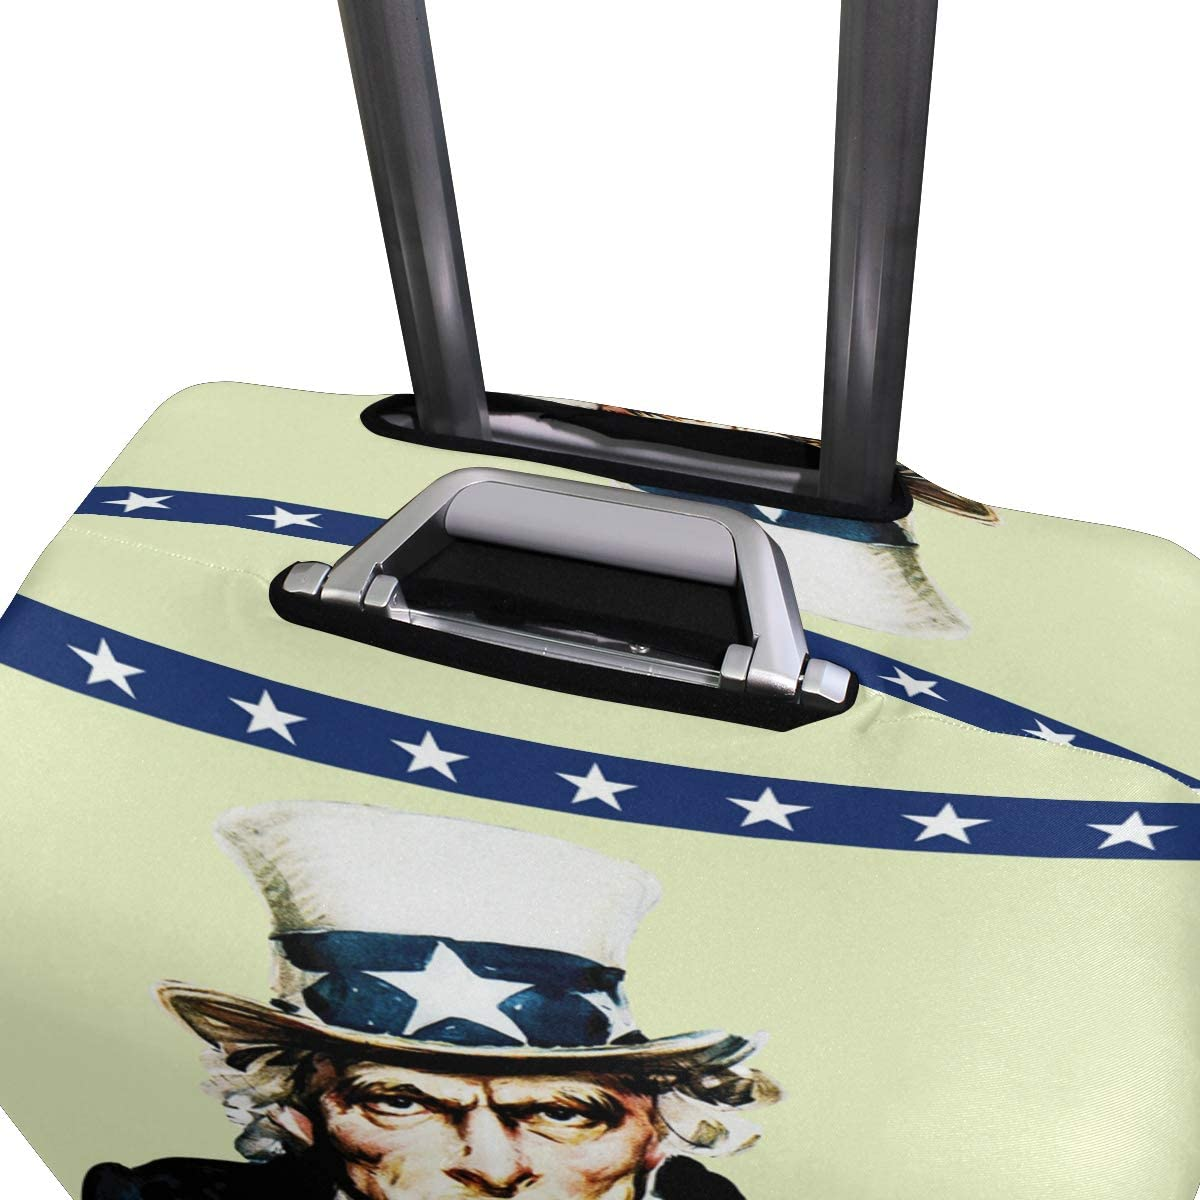 Donald Trump 2020 Travel Luggage Cover Spandex Washable Suitcase Protective Cover Baggage Protector Fit 18-32 inch Suitcase